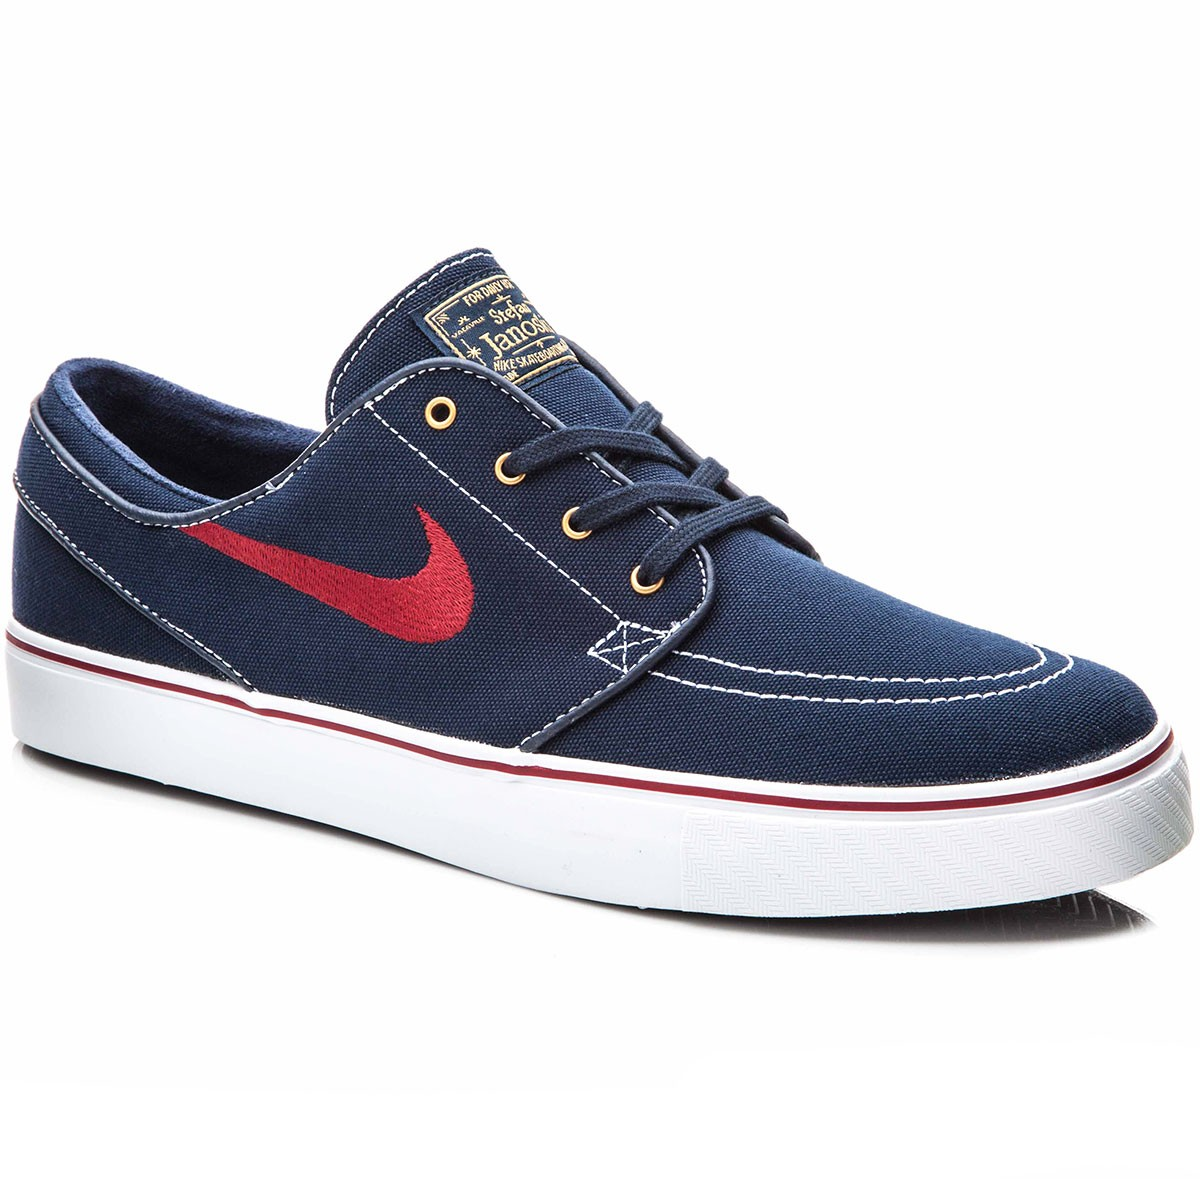 Nike Zoom Stefan Janoski Canvas Shoes - Obsidian/White/Metallic Gold/Red - 10.0